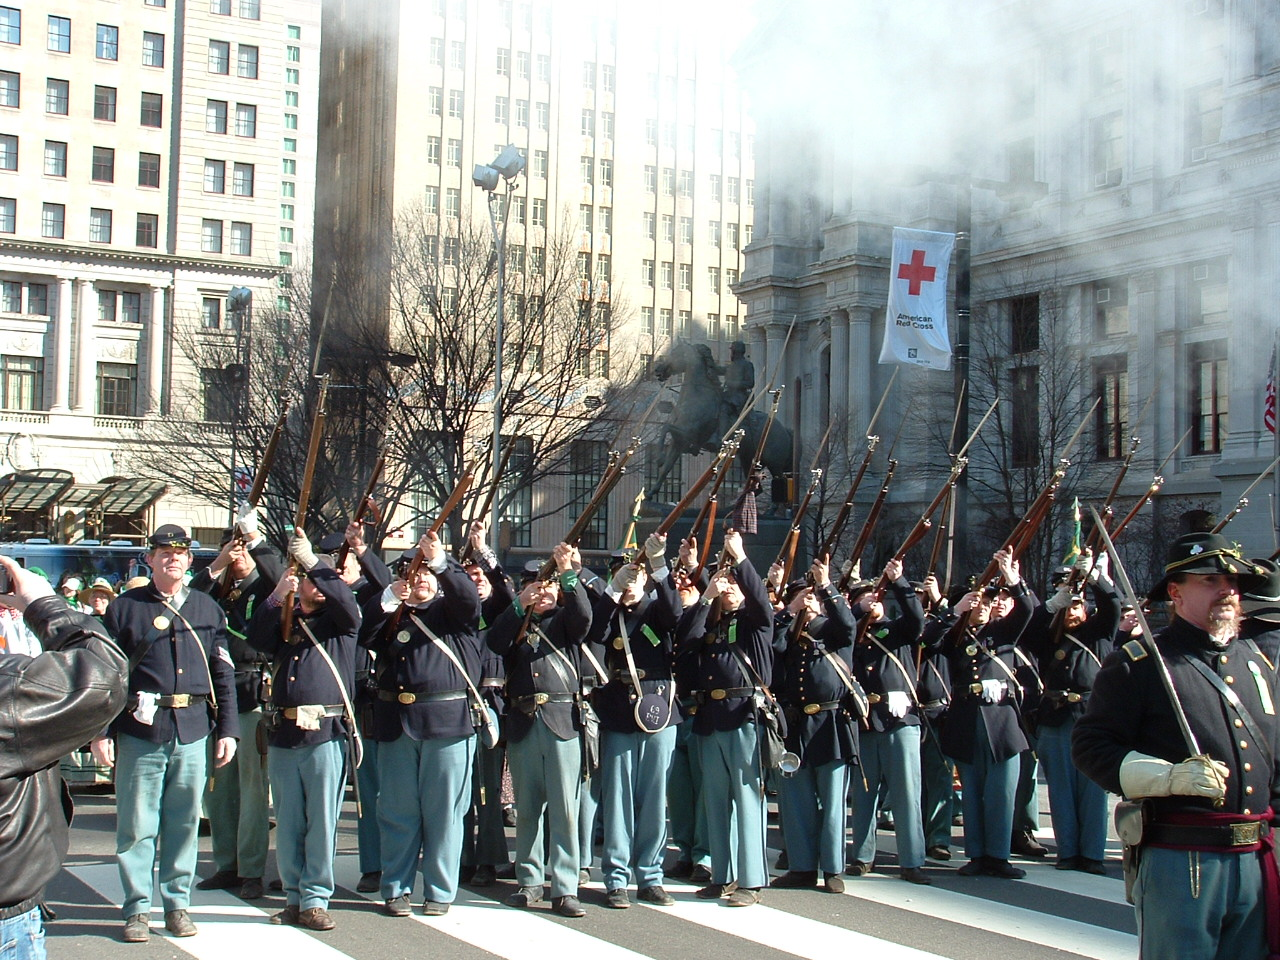 The 69th marches each year on Broad Street